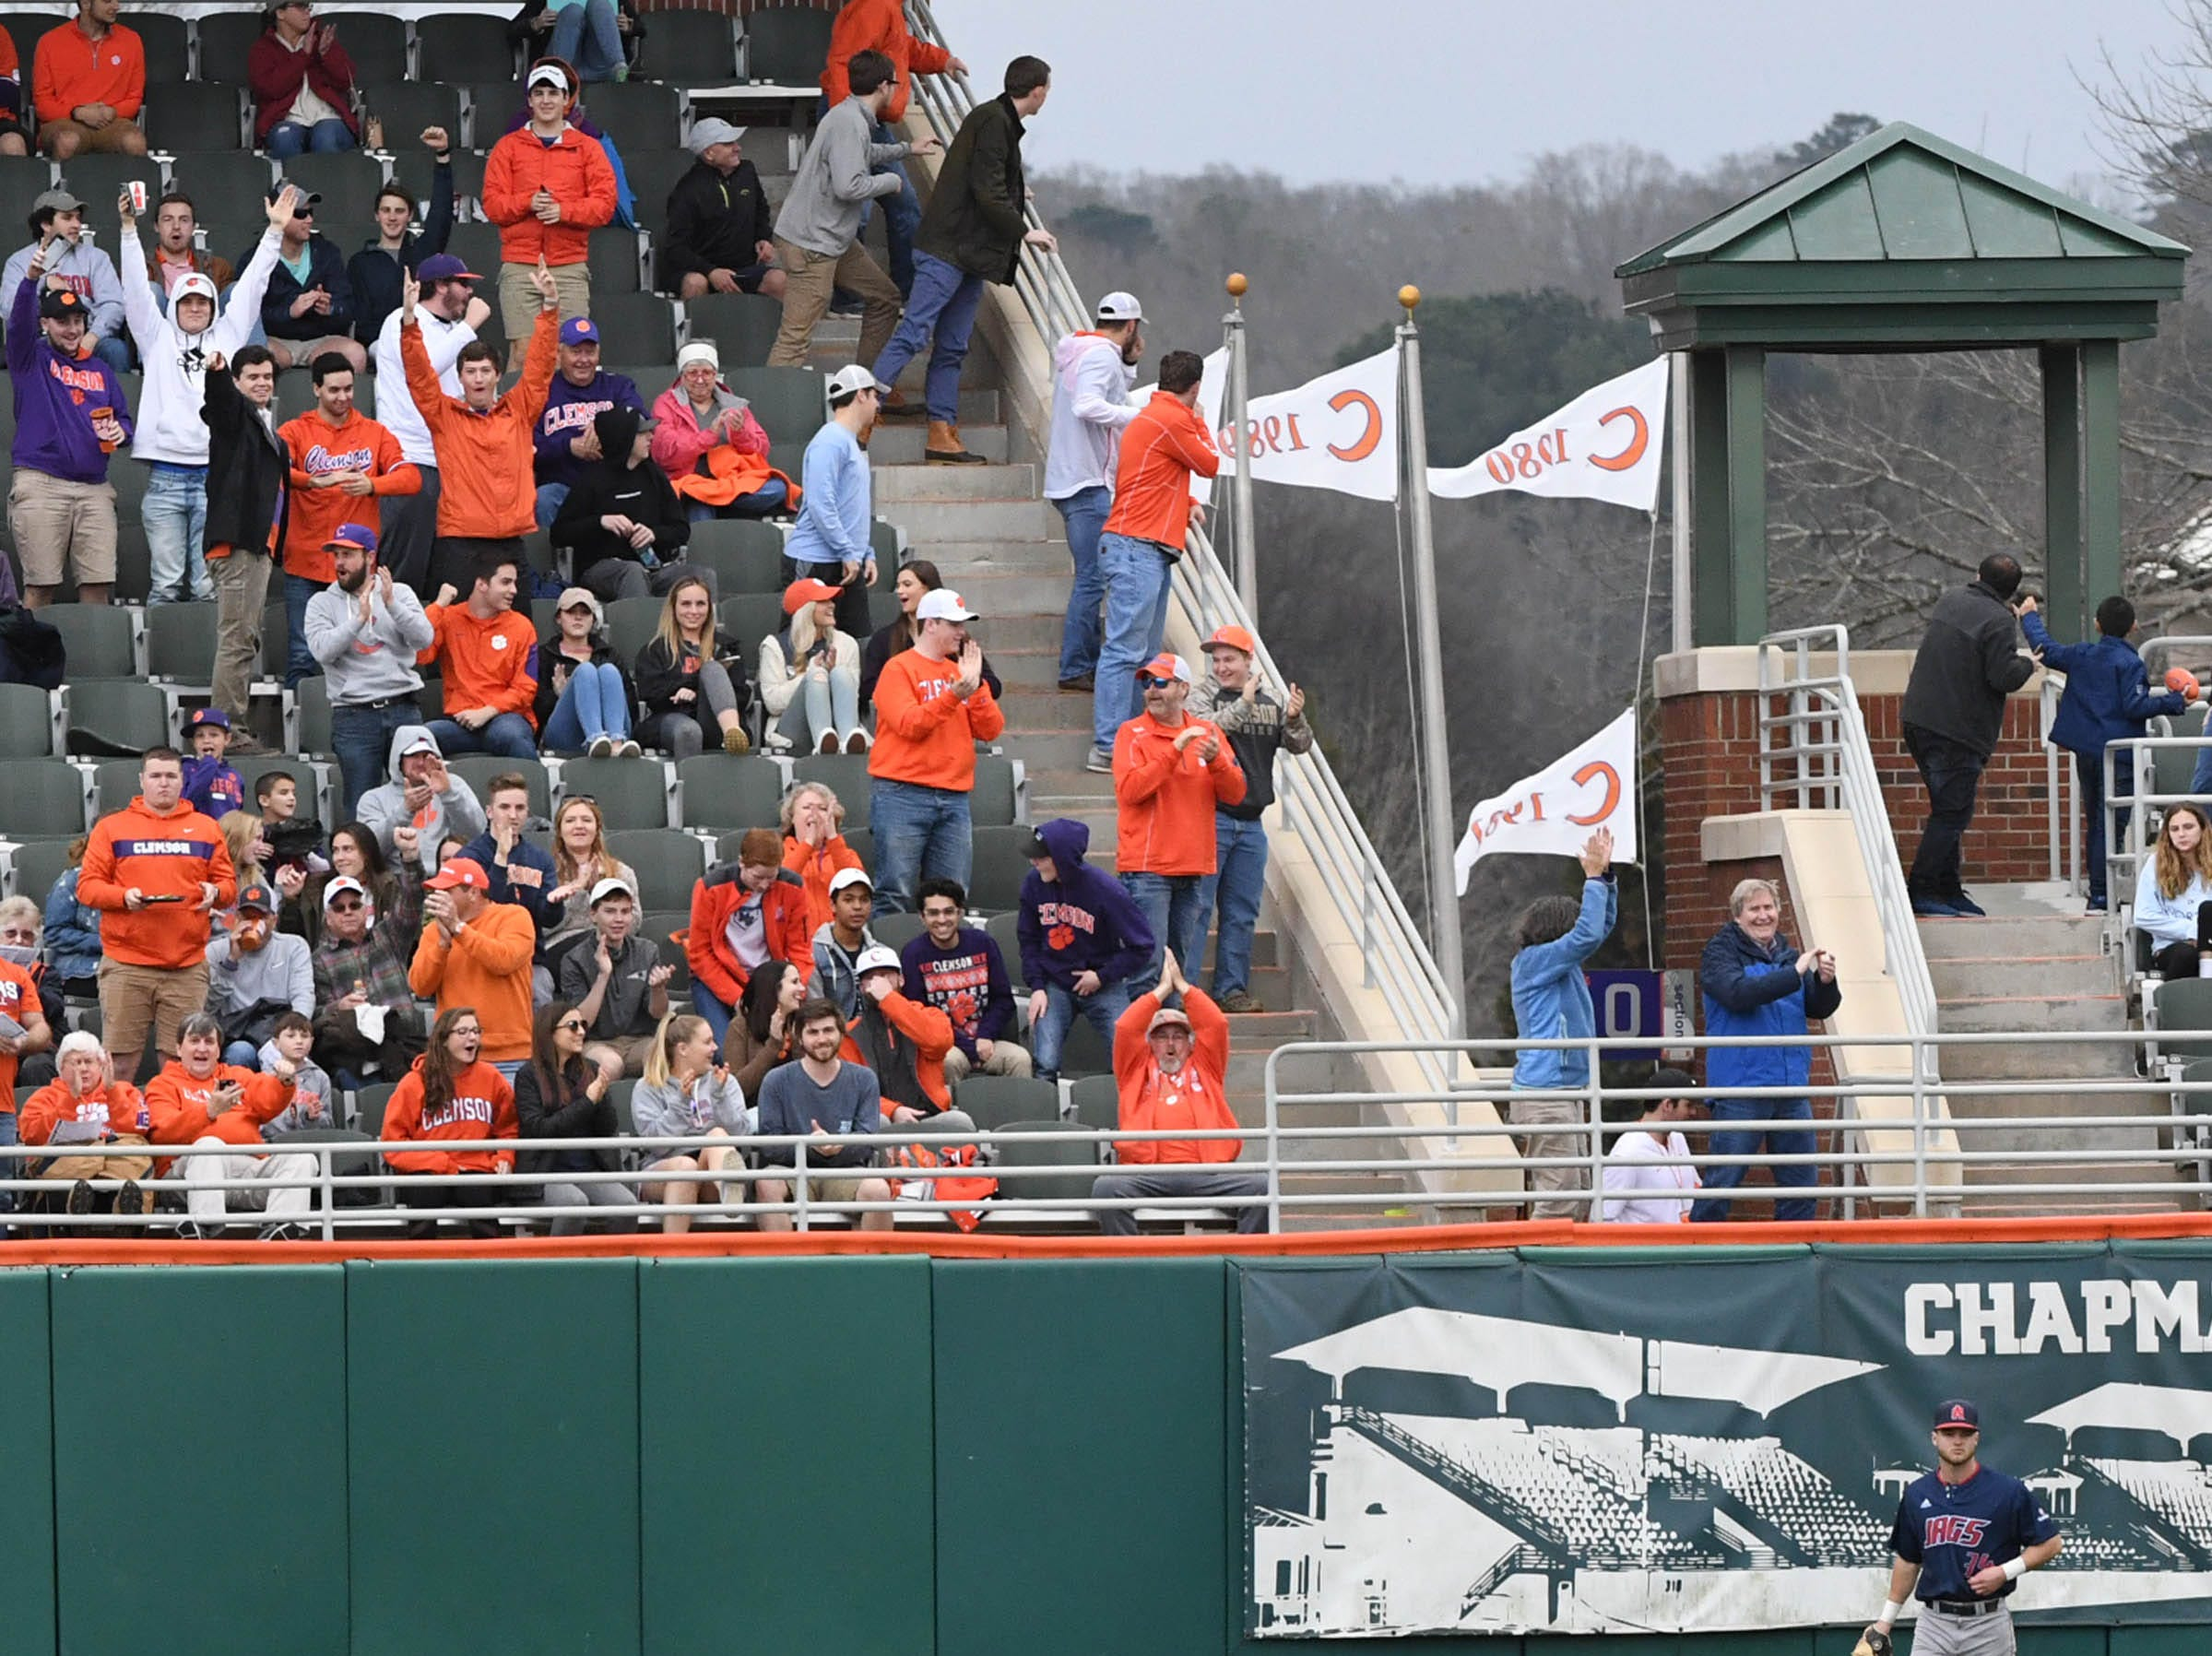 Fans cheer after Clemson junior Logan Davidson(8) hit a three-run home run against South Alabama during the bottom of the fifth inning at Doug Kingsmore Stadium in Clemson Friday, February 15, 2019.